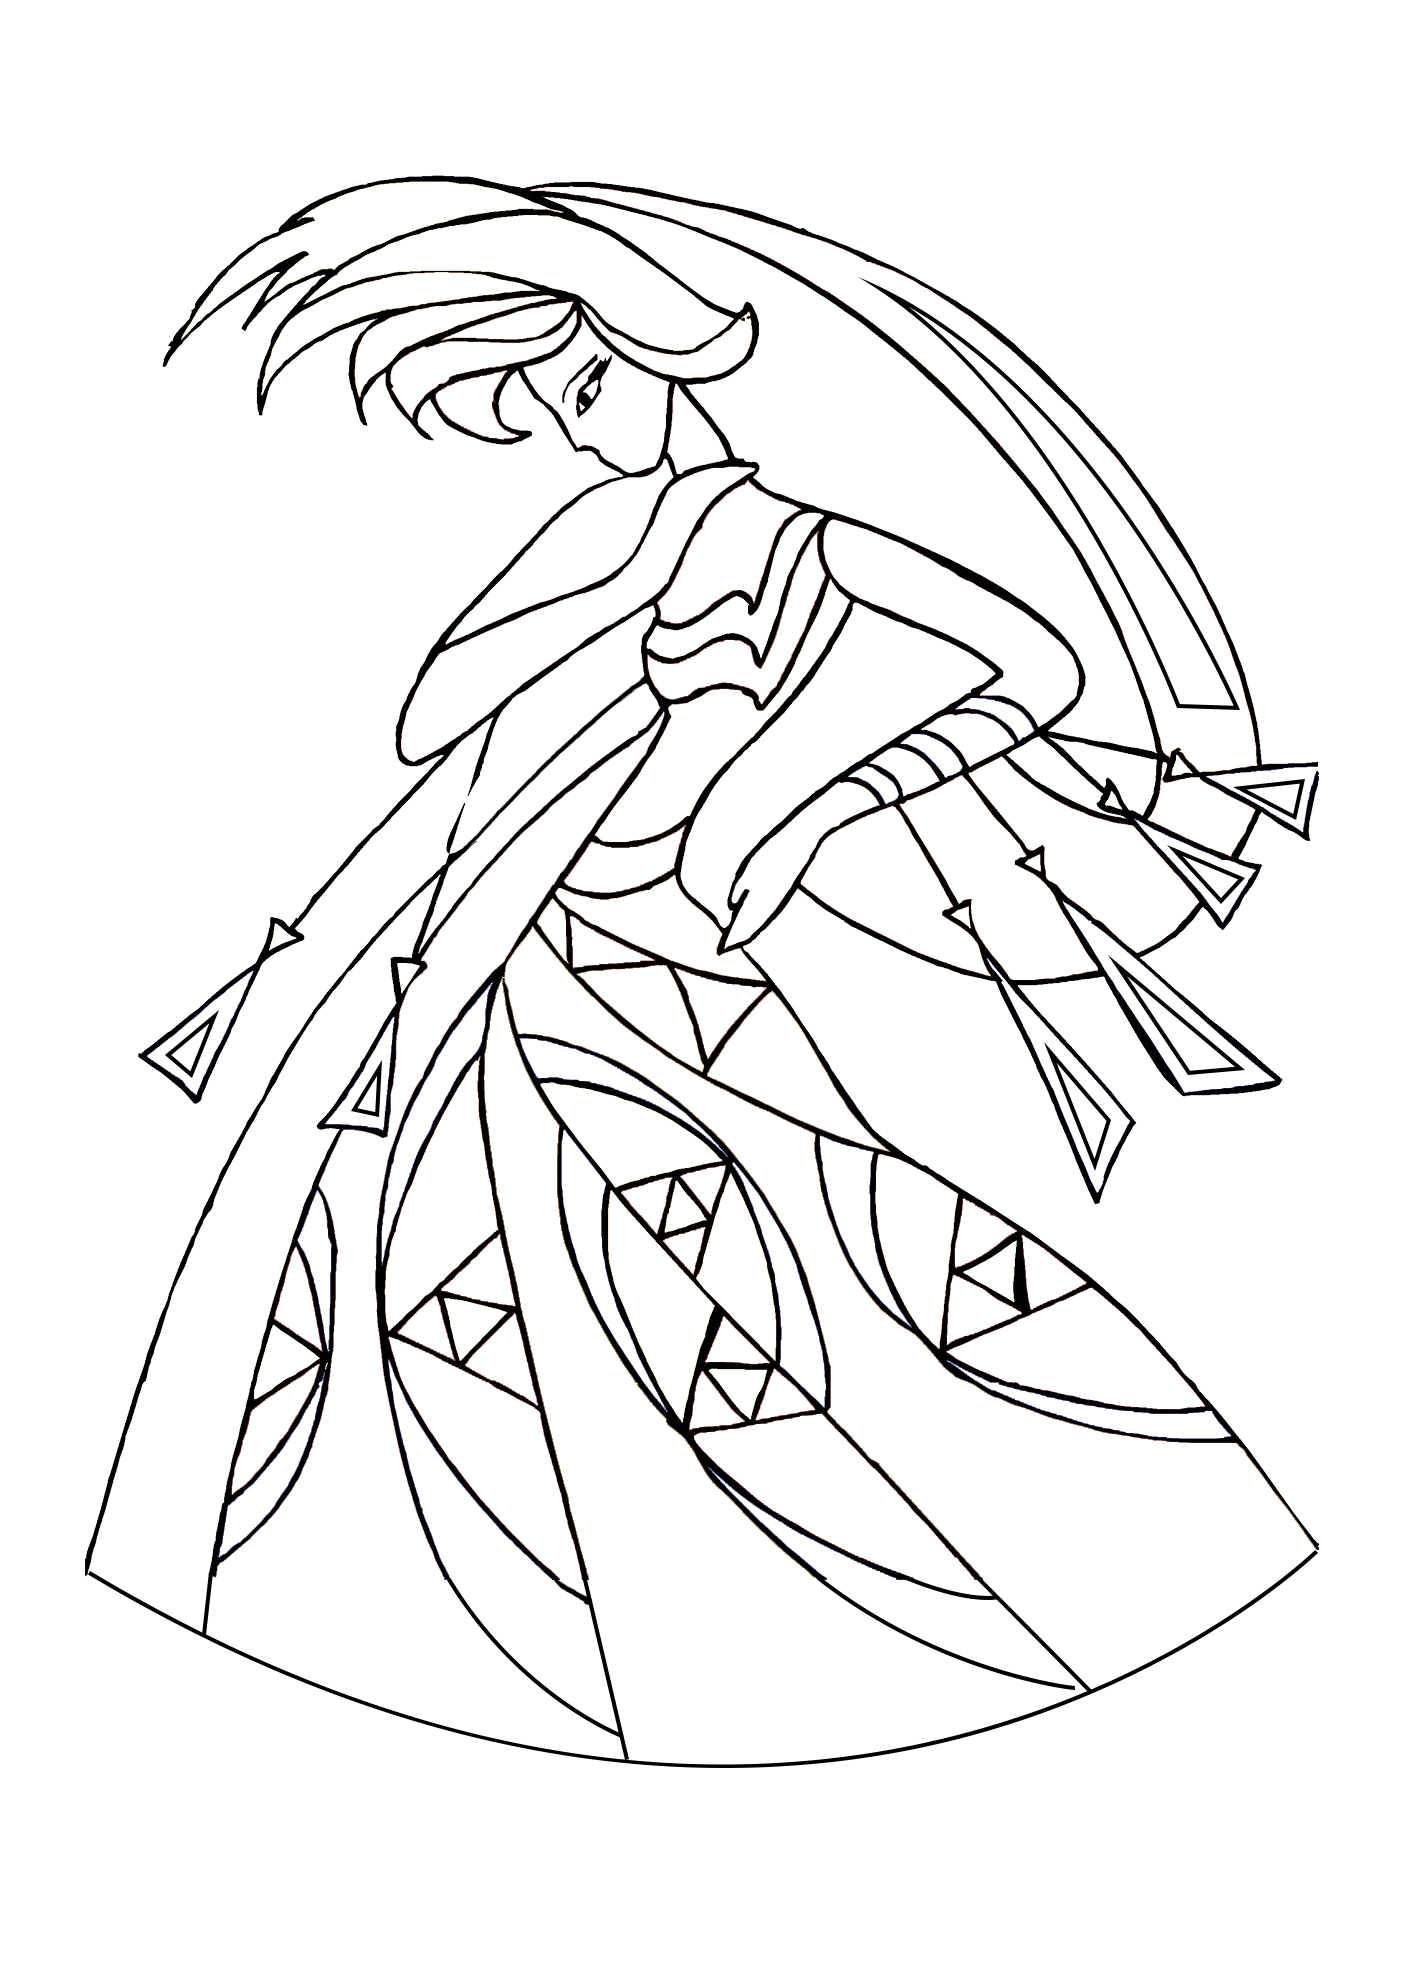 Art deco style dance coloring page